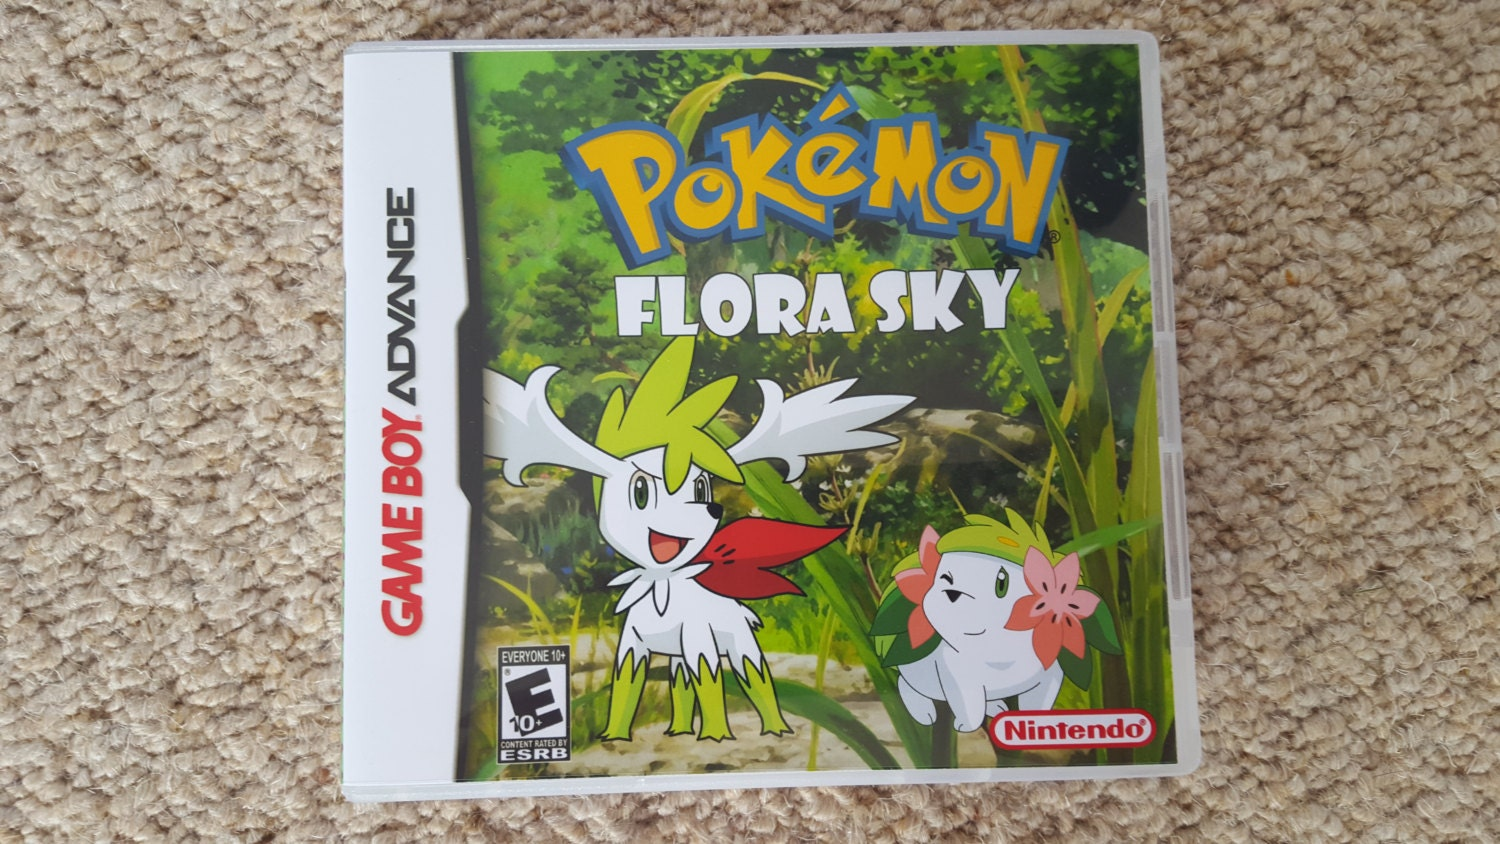 One Bedroom Apartments Near Usf Cheat Code In Pokemon Flora Sky Pokemon Flora Sky Cheats